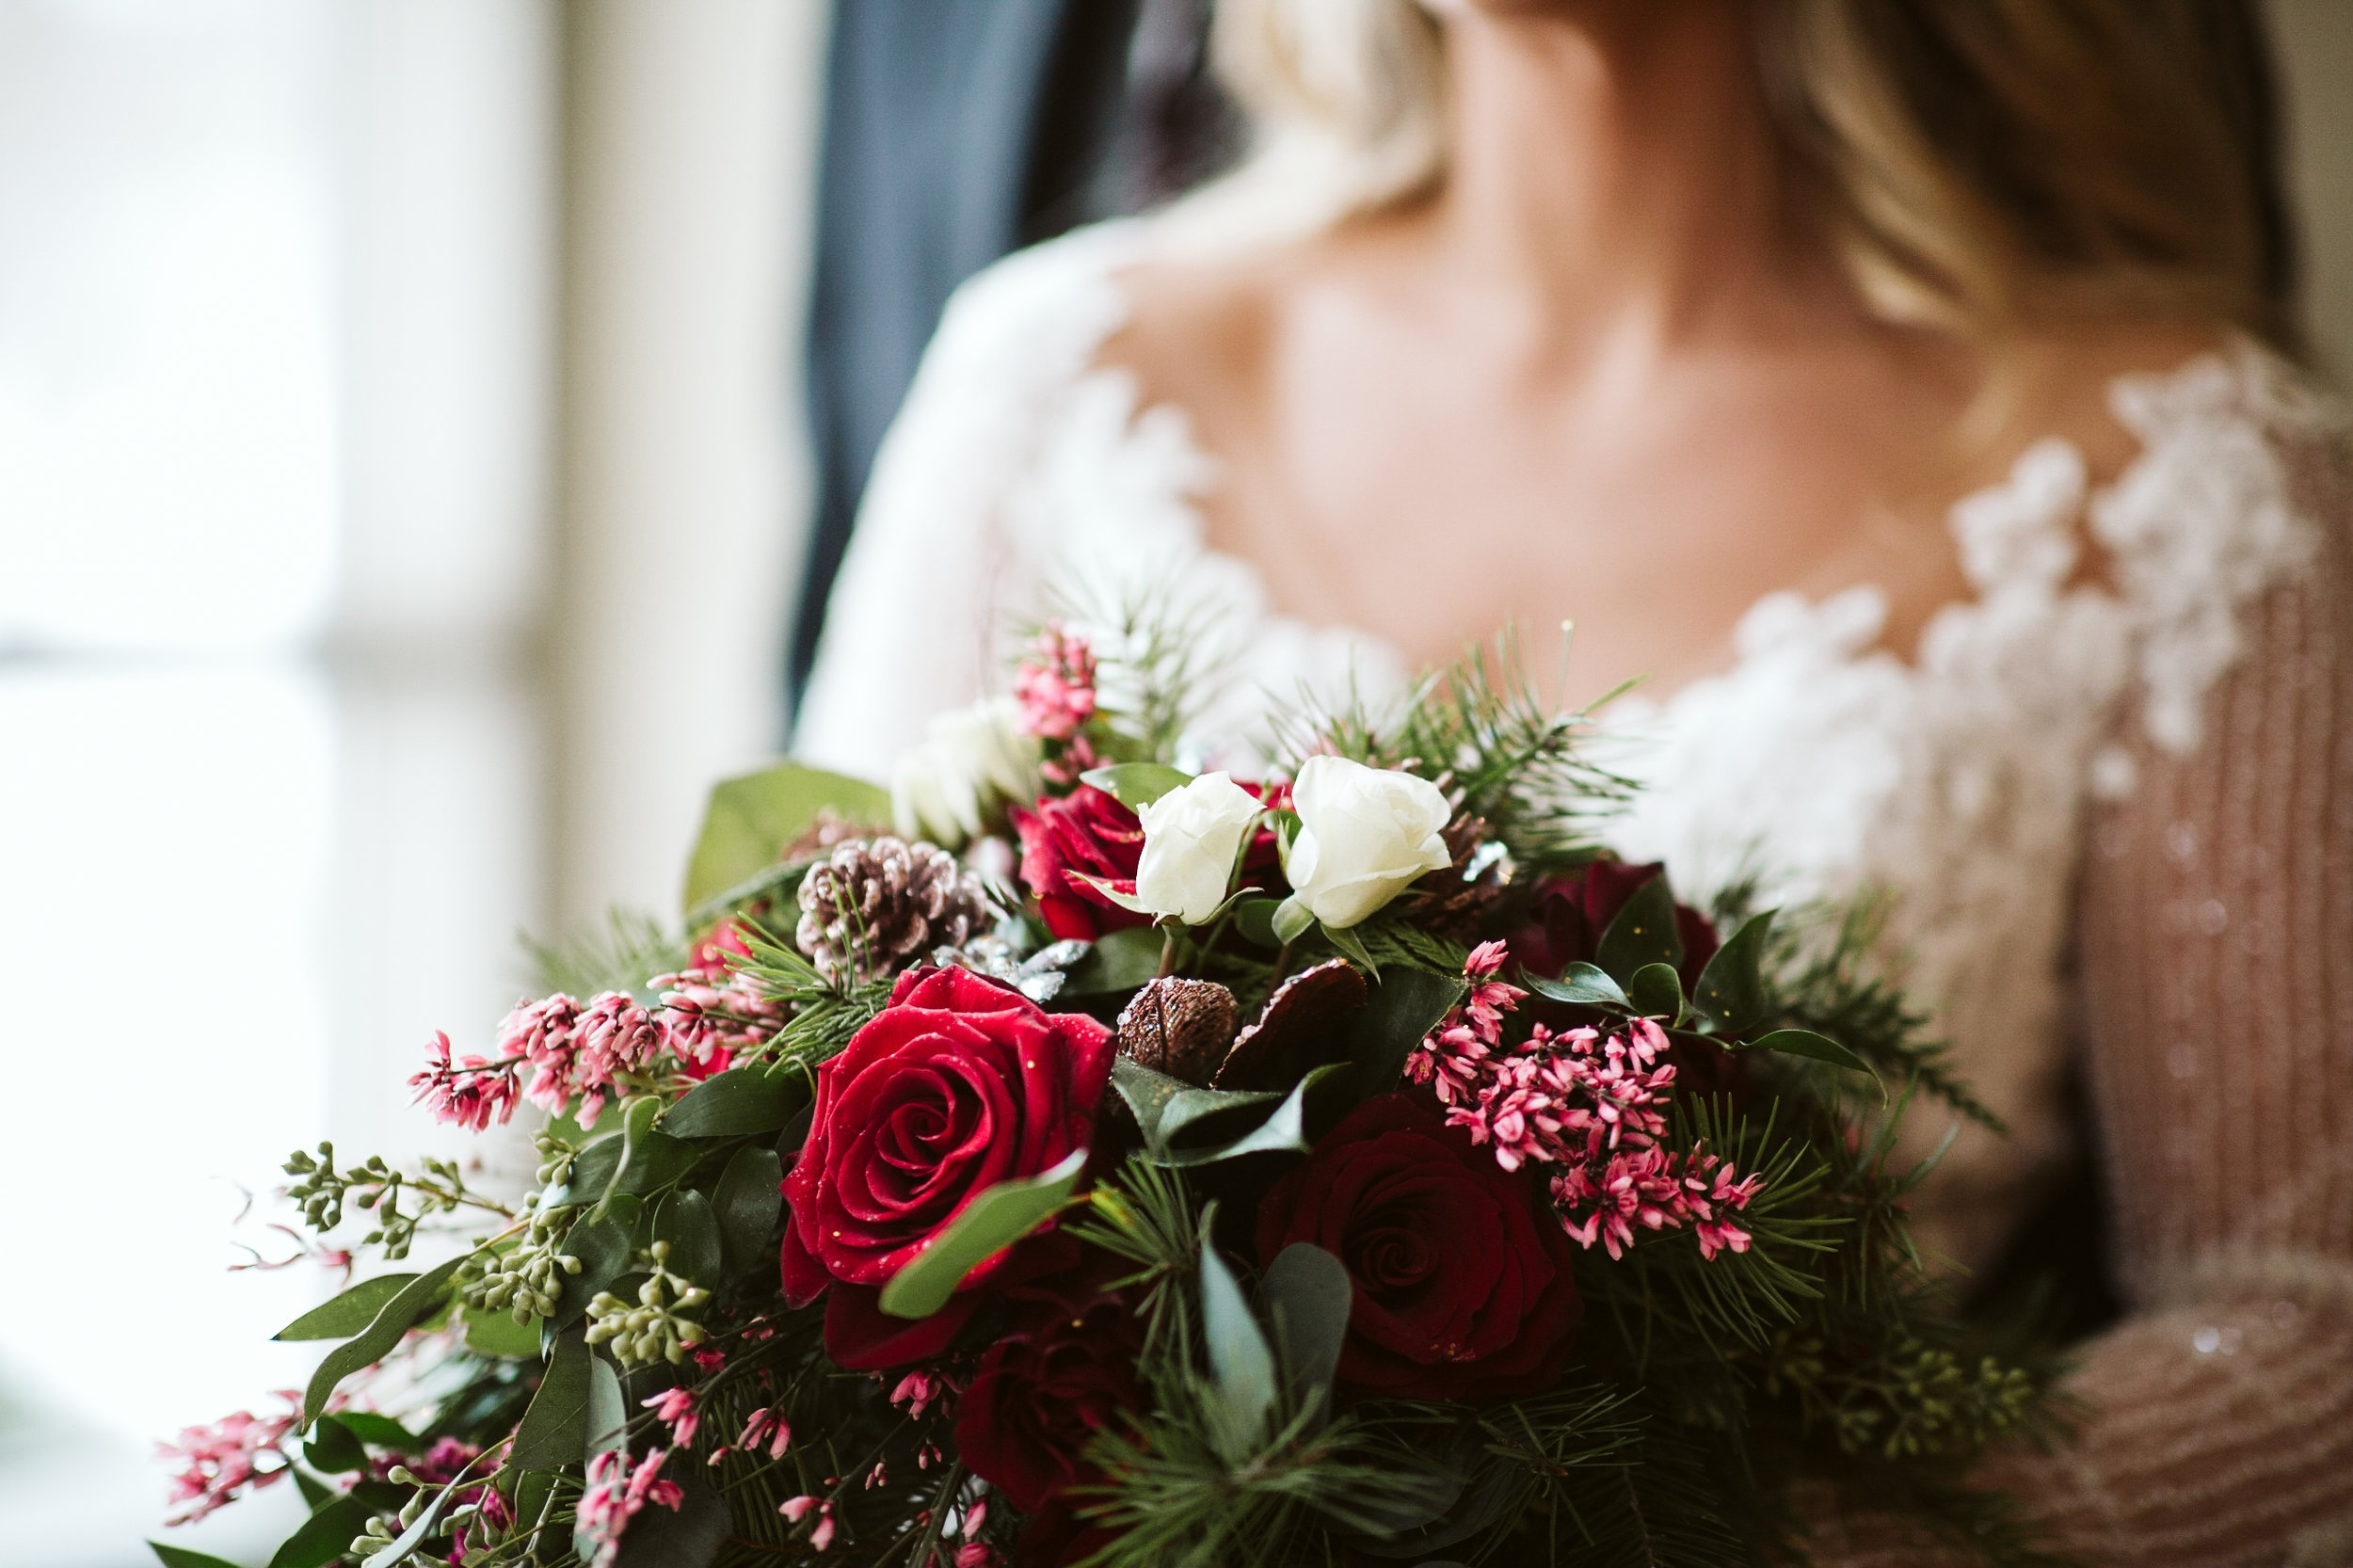 WEDDINGSCheck out our amazing floral designs for weddings. -